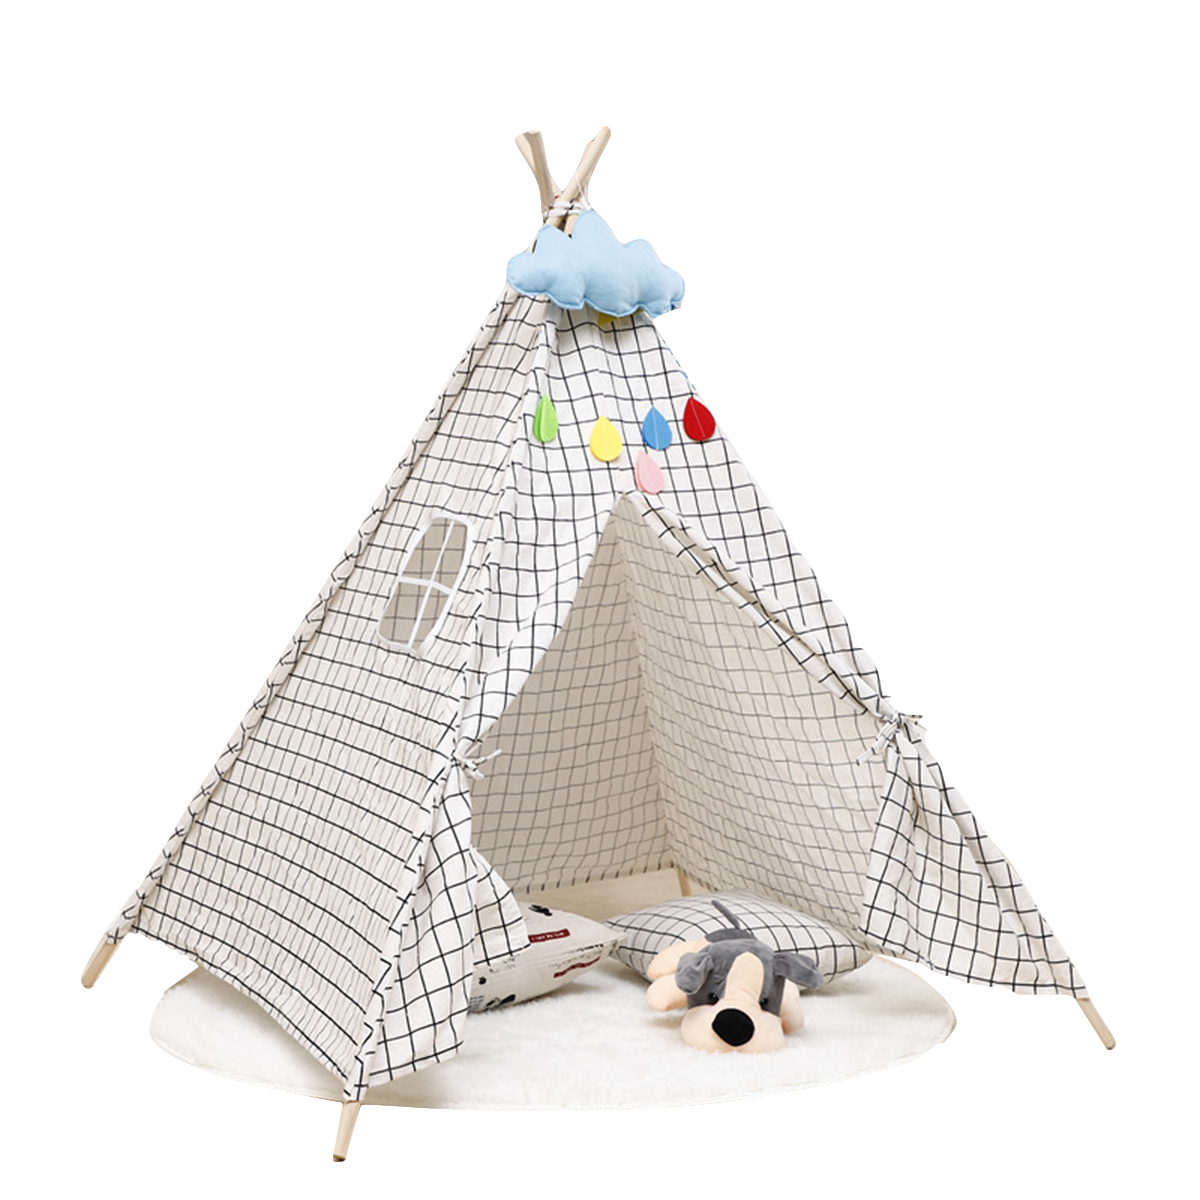 135Cm Kids Teepee Play Tent Pretend Playhouse Indoor Outdoor Children Toddler Indian Canvas Playhouse Sleeping Dome W/ Package Bag Gift